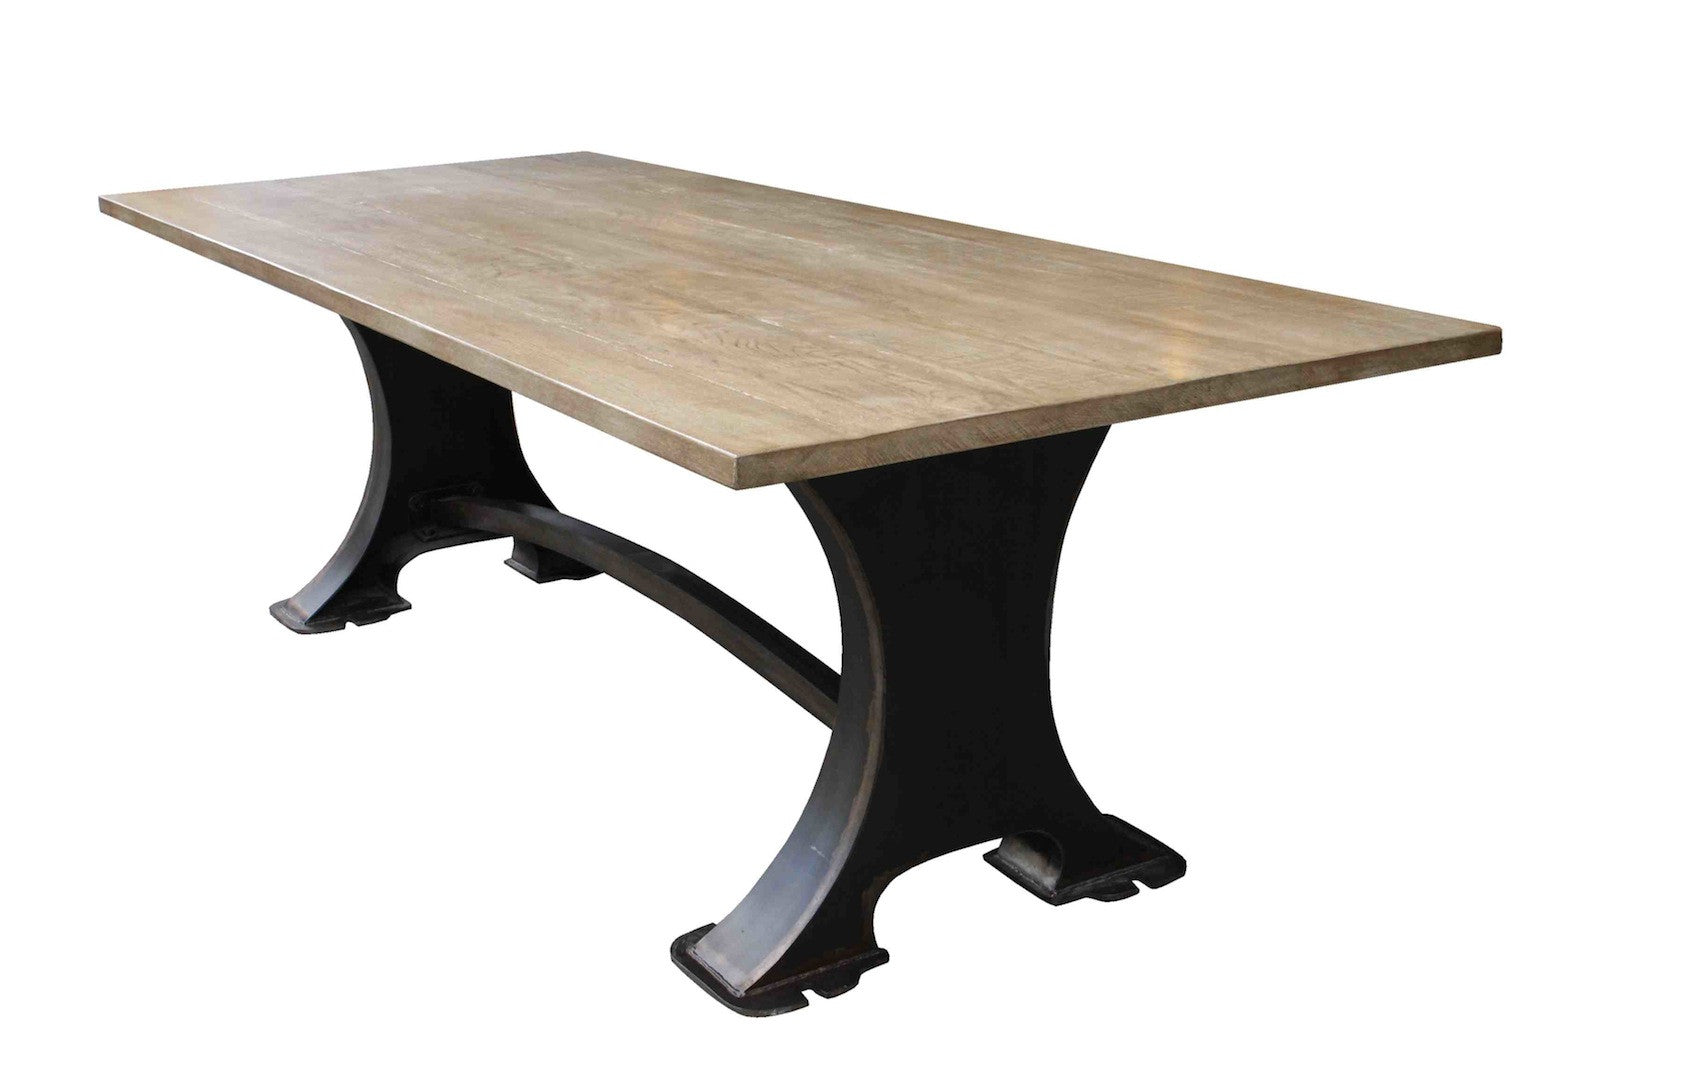 Roberto Dining Table- Industrial Design Home Furnishings Handmade ...